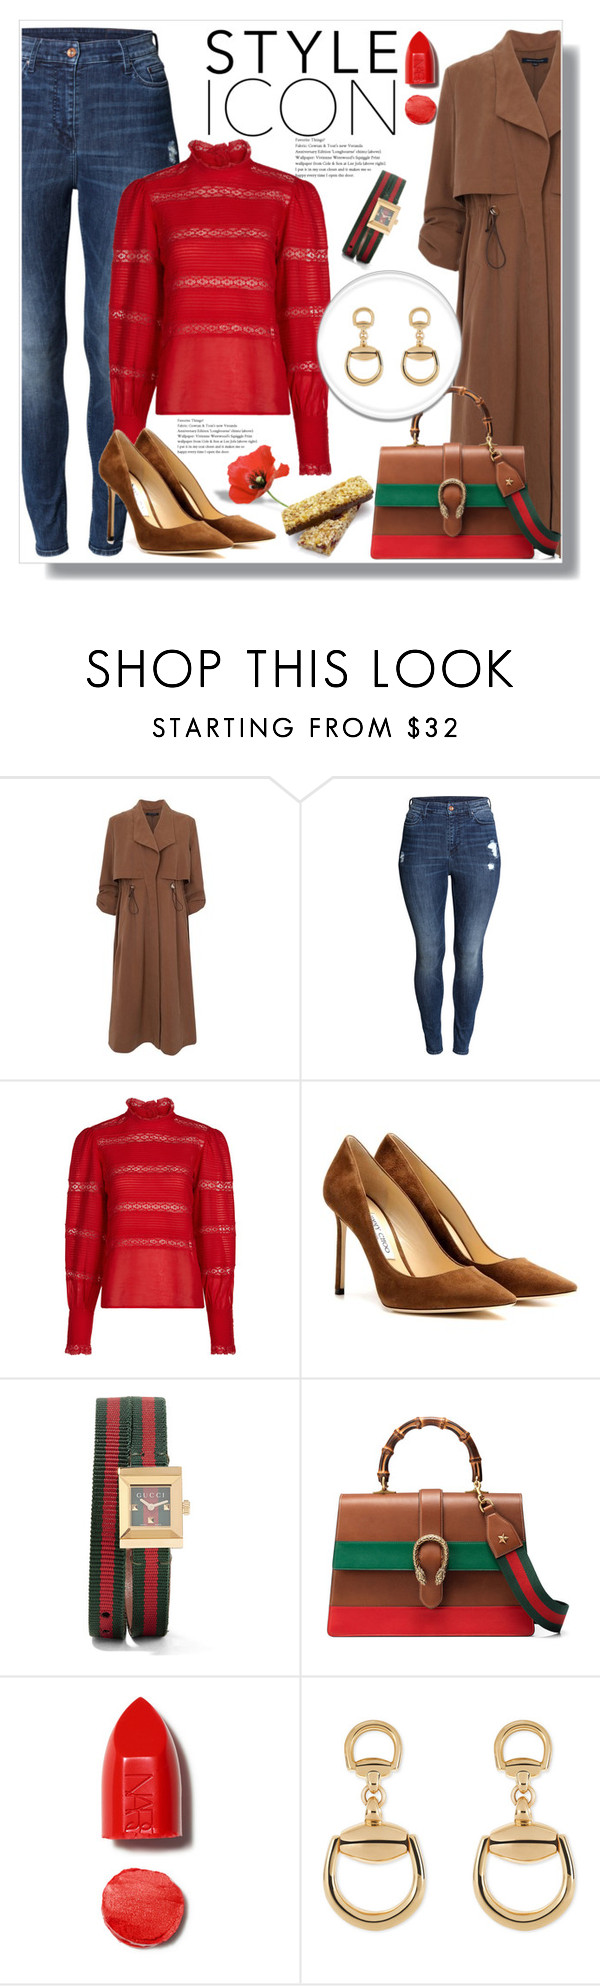 """Gucci Bamboo Leather Tote"" by queenvirgo ❤ liked on Polyvore featuring French Connection, H&M, Étoile Isabel Marant, Jimmy Choo, Gucci and NARS Cosmetics"